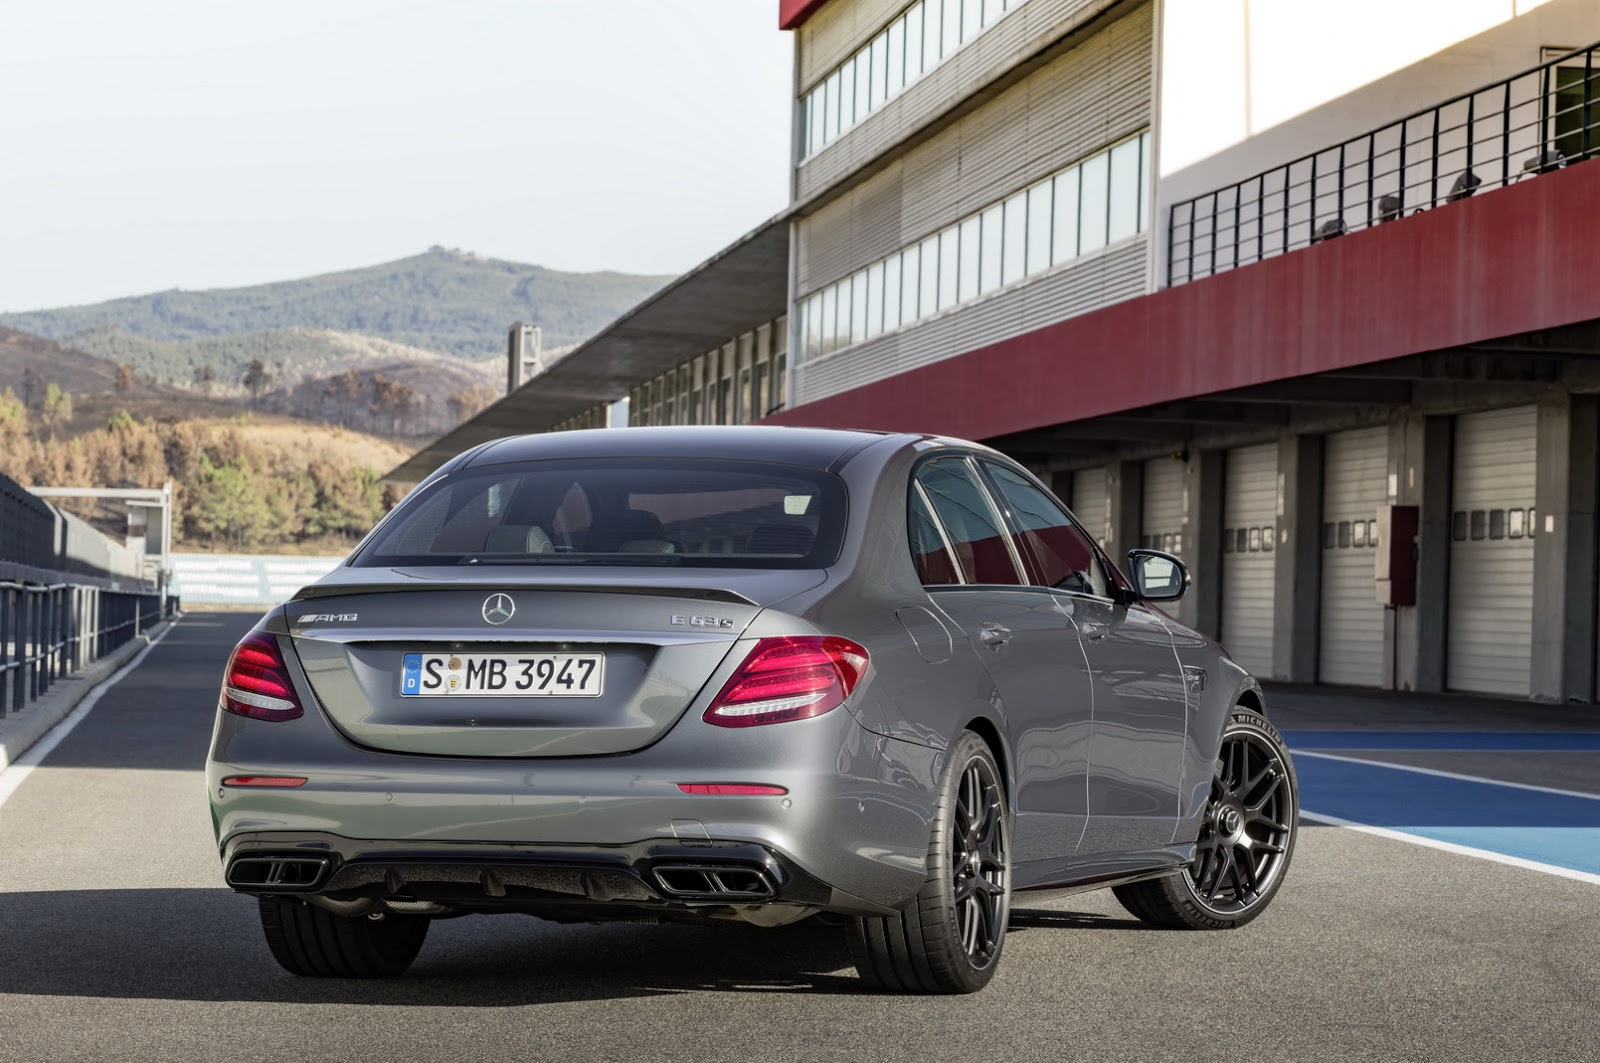 2018 mercedes amg e63 e63 s get up to 603hp hit 62mph. Black Bedroom Furniture Sets. Home Design Ideas